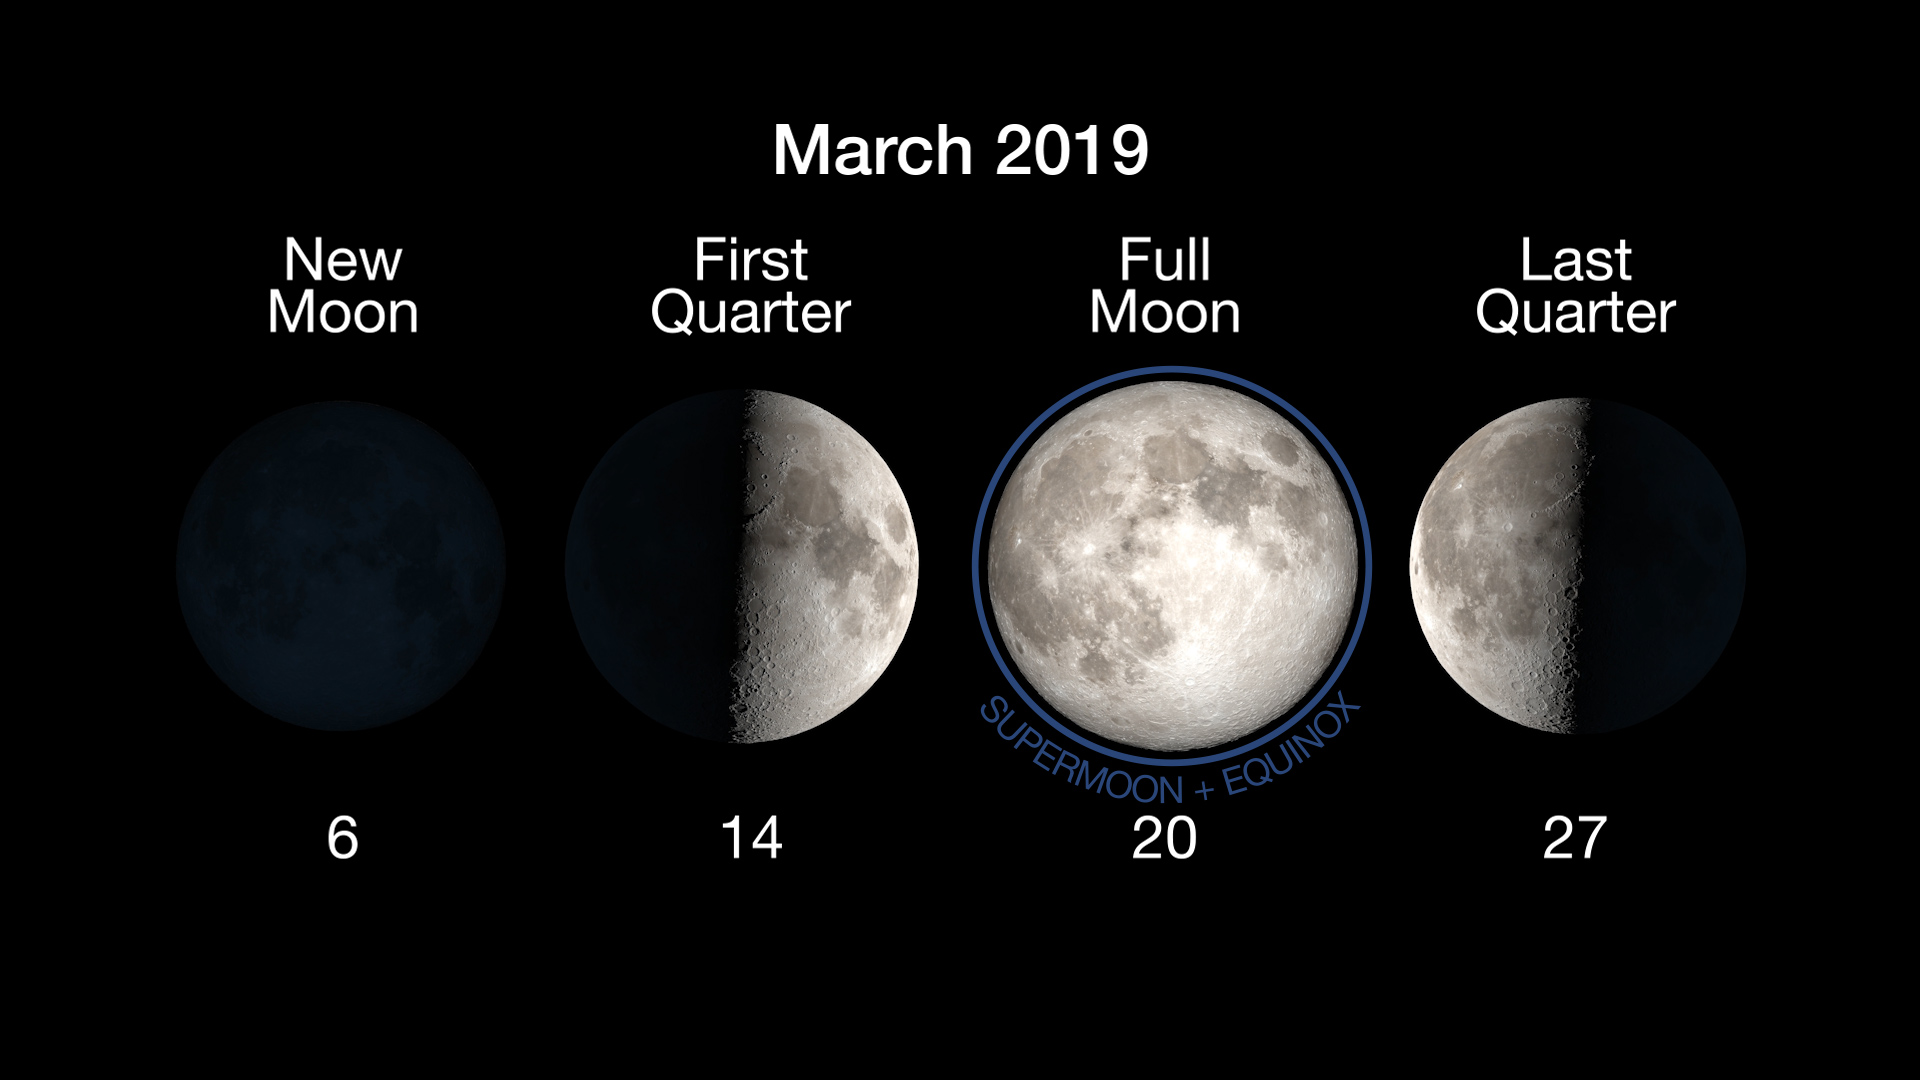 Moon phases. Full moon on March 20.